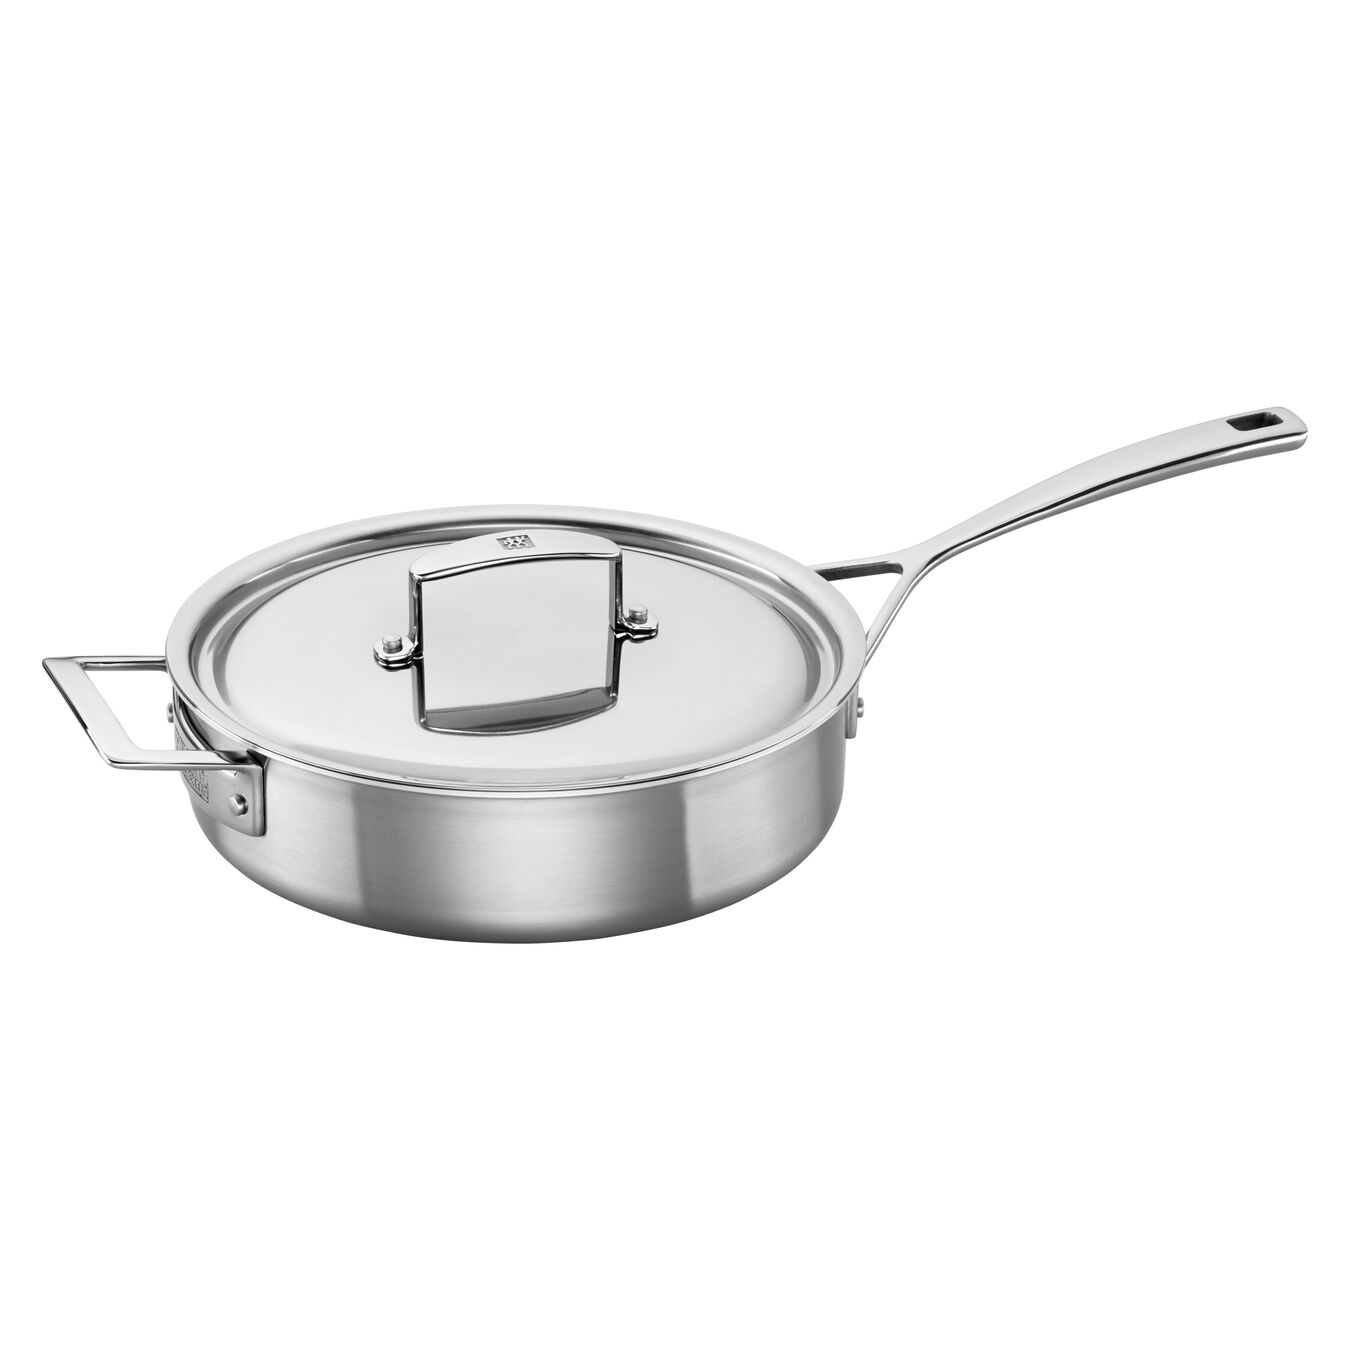 7 Piece 18/10 Stainless Steel Cookware set,,large 5